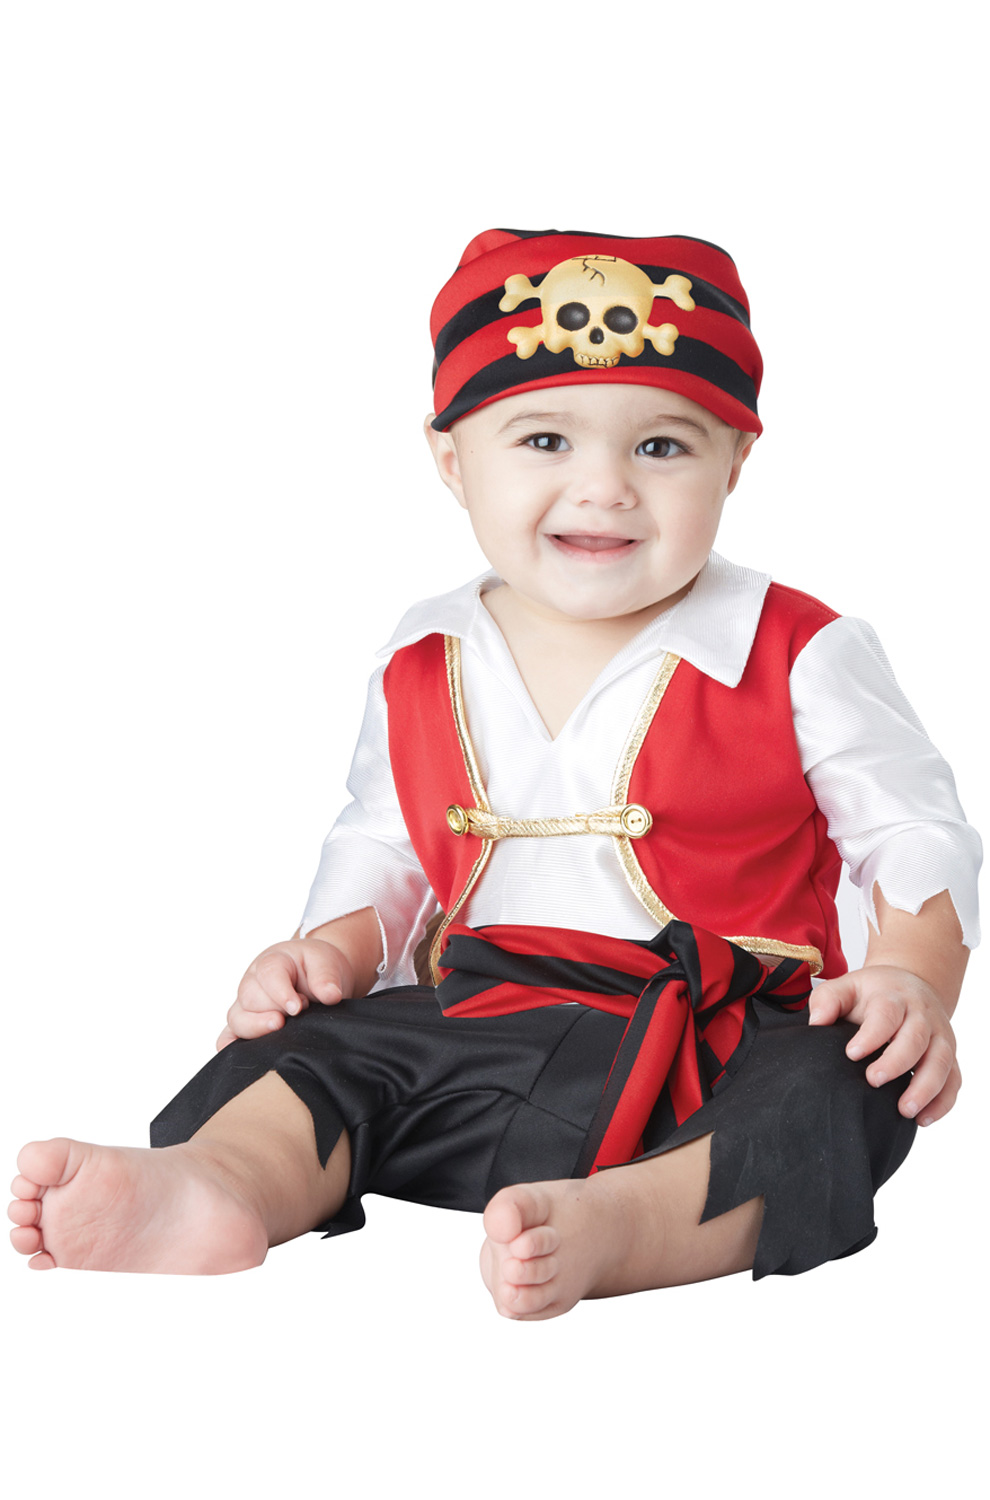 Pee Wee Pirate Infant Costume by California Costumes